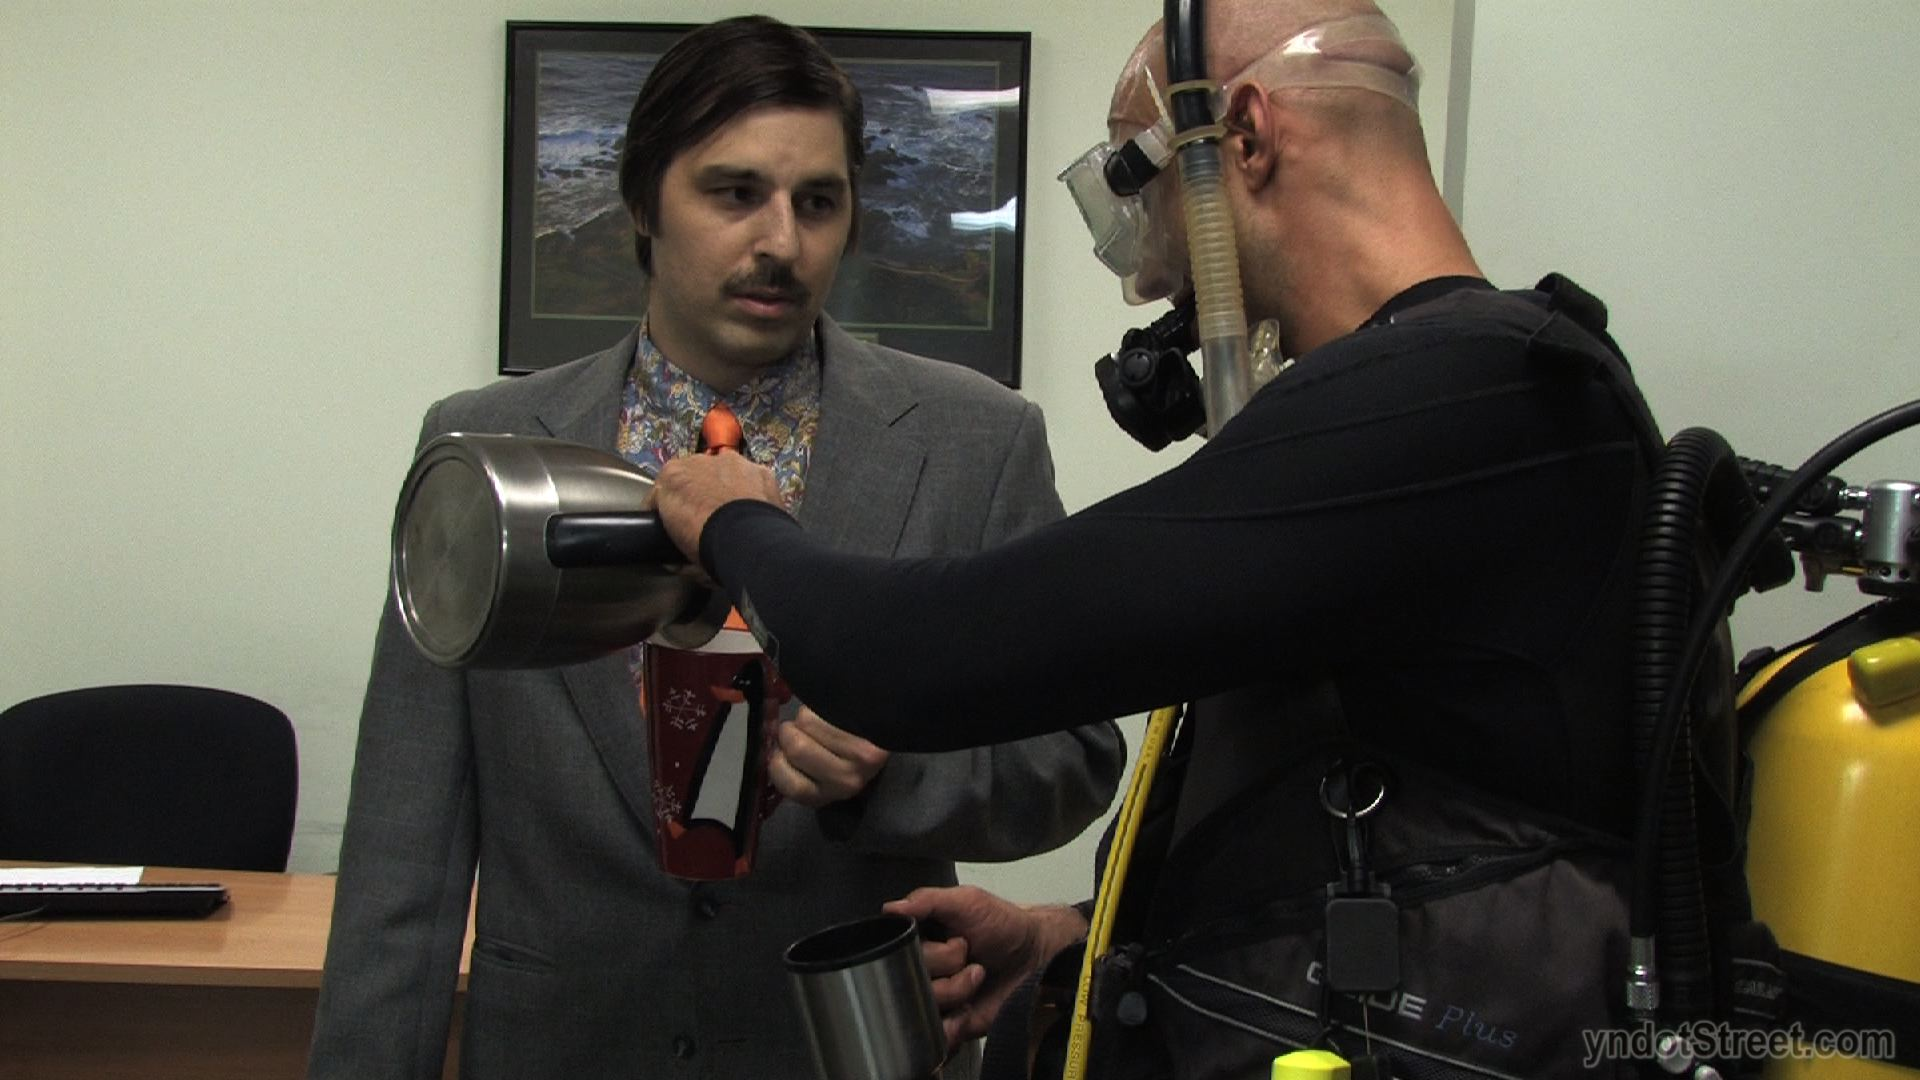 SCUBA COFFEE SERVICE (Clocking Out Production Still)